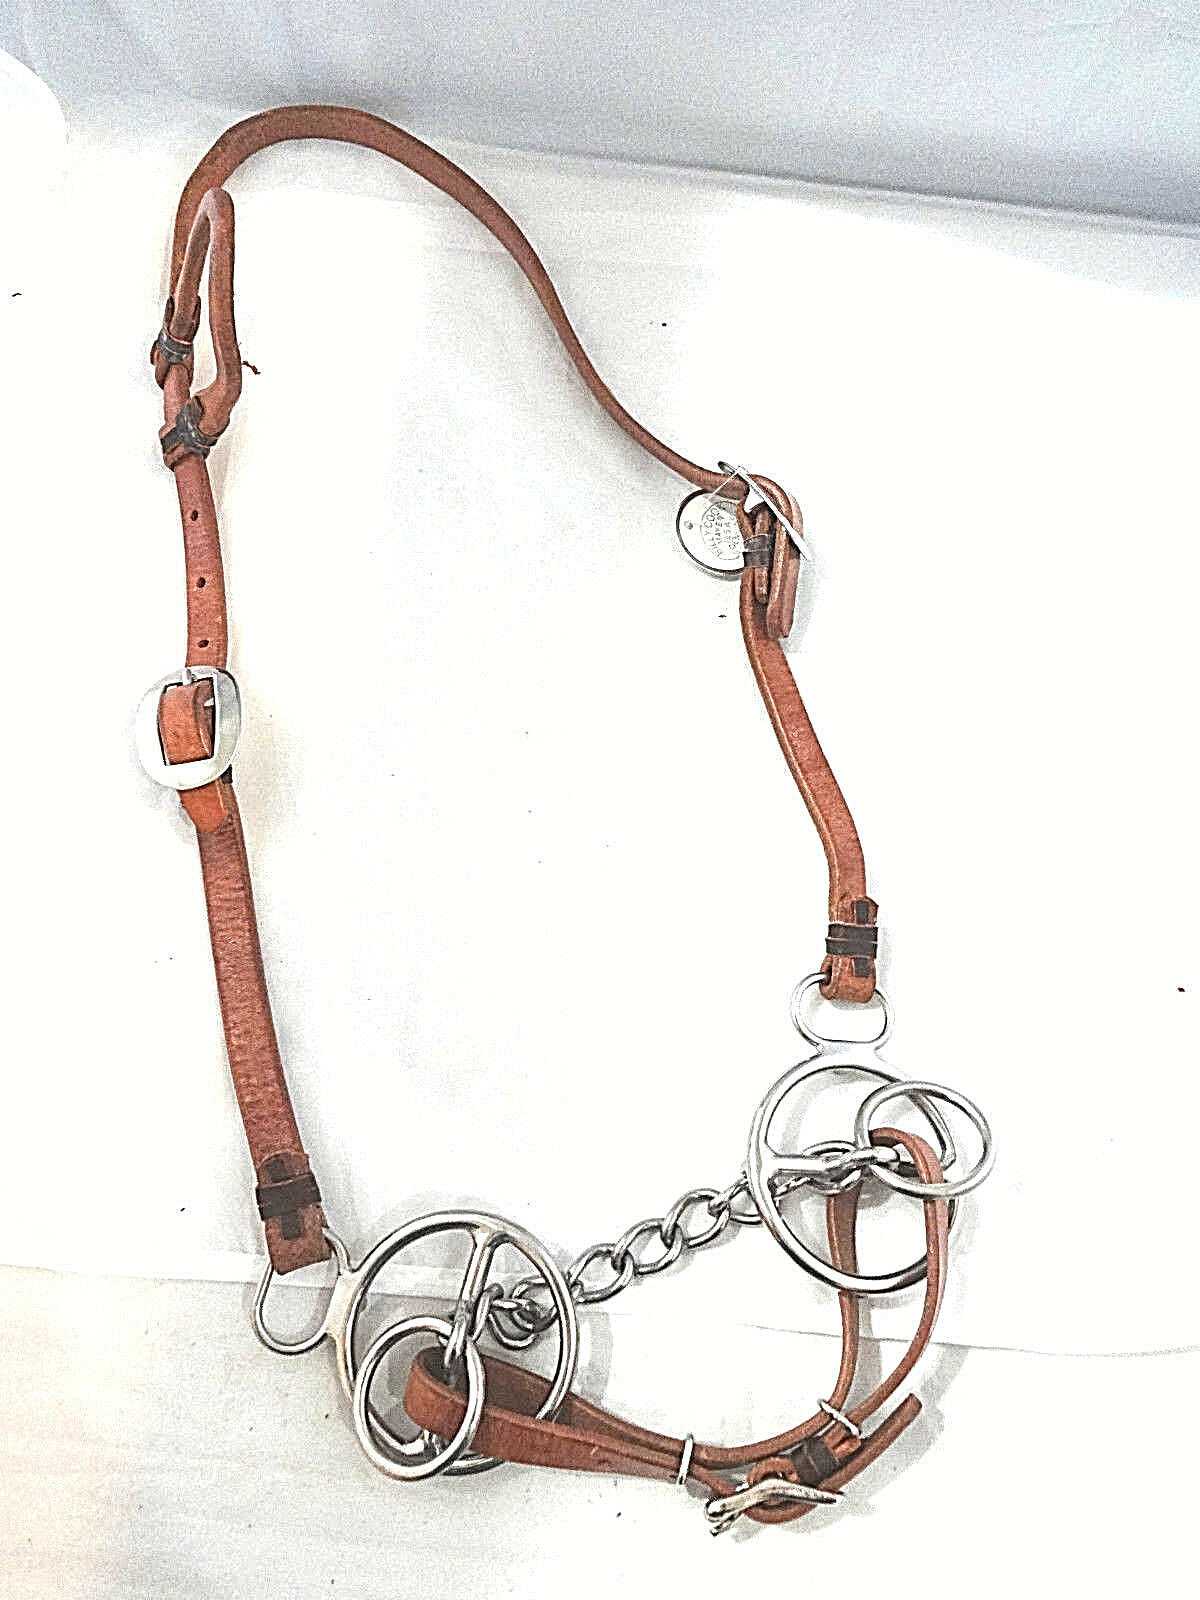 New Billy Cook Harness Leather One Ear Horse Headstall Bowman Twisted Snaffle